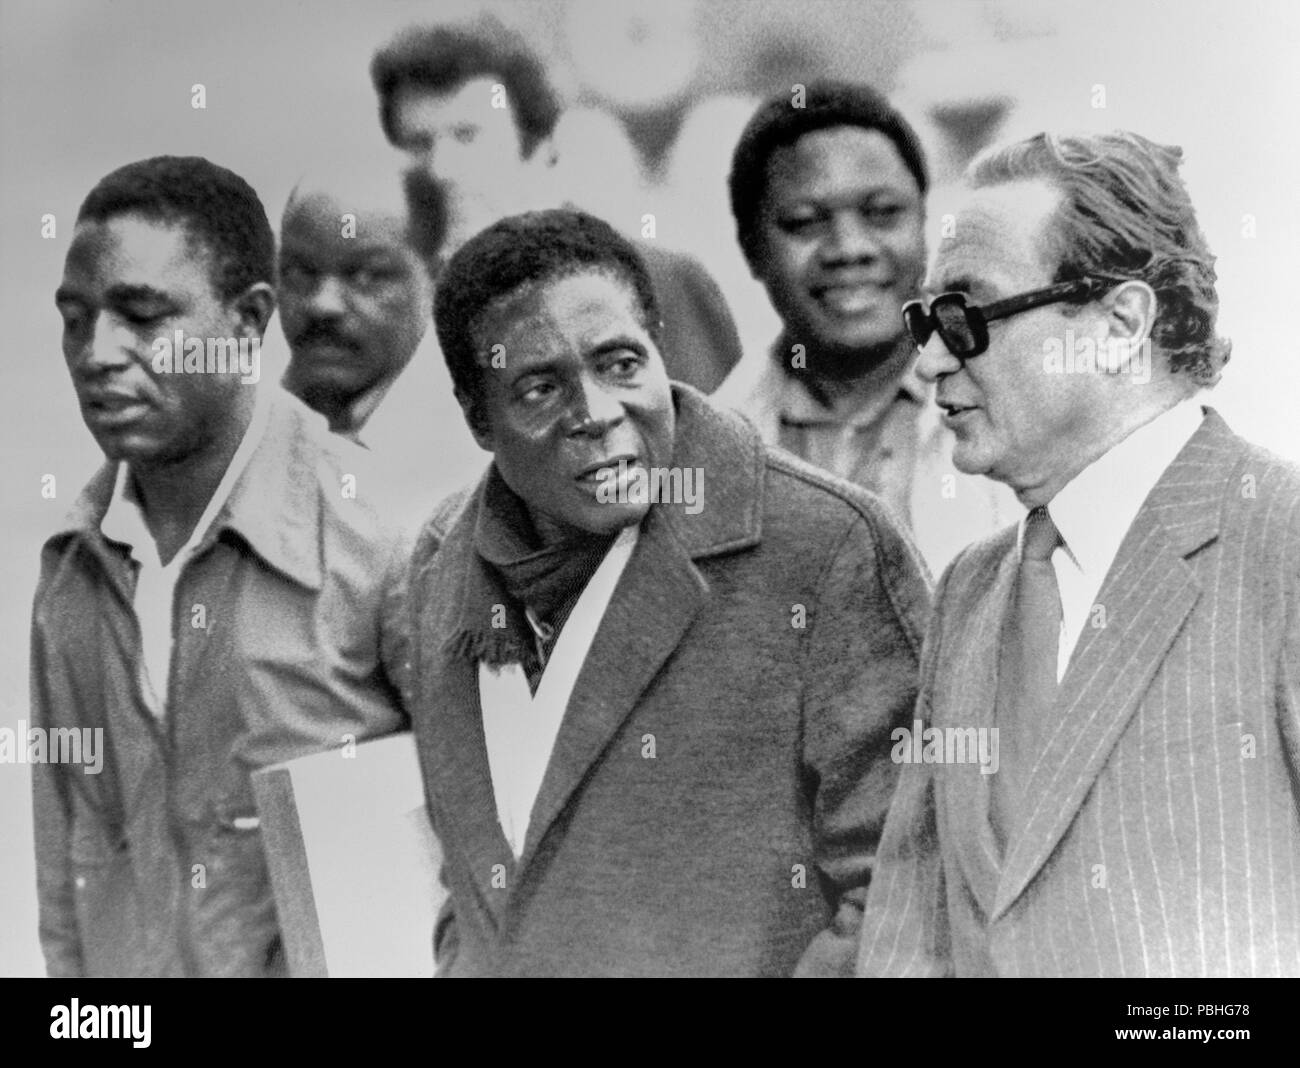 24th October 1976. Geneva, Switzerland. Guerrilla leader Robert Mugabe, Secretary General of the Zimbabwe African Nations Union, is accompanied by a Geneva Protocol Official as he and his party arrive in Geneva to attend the conference on Rhodesia. His group was the first black group to arrive for the talks. - Stock Image